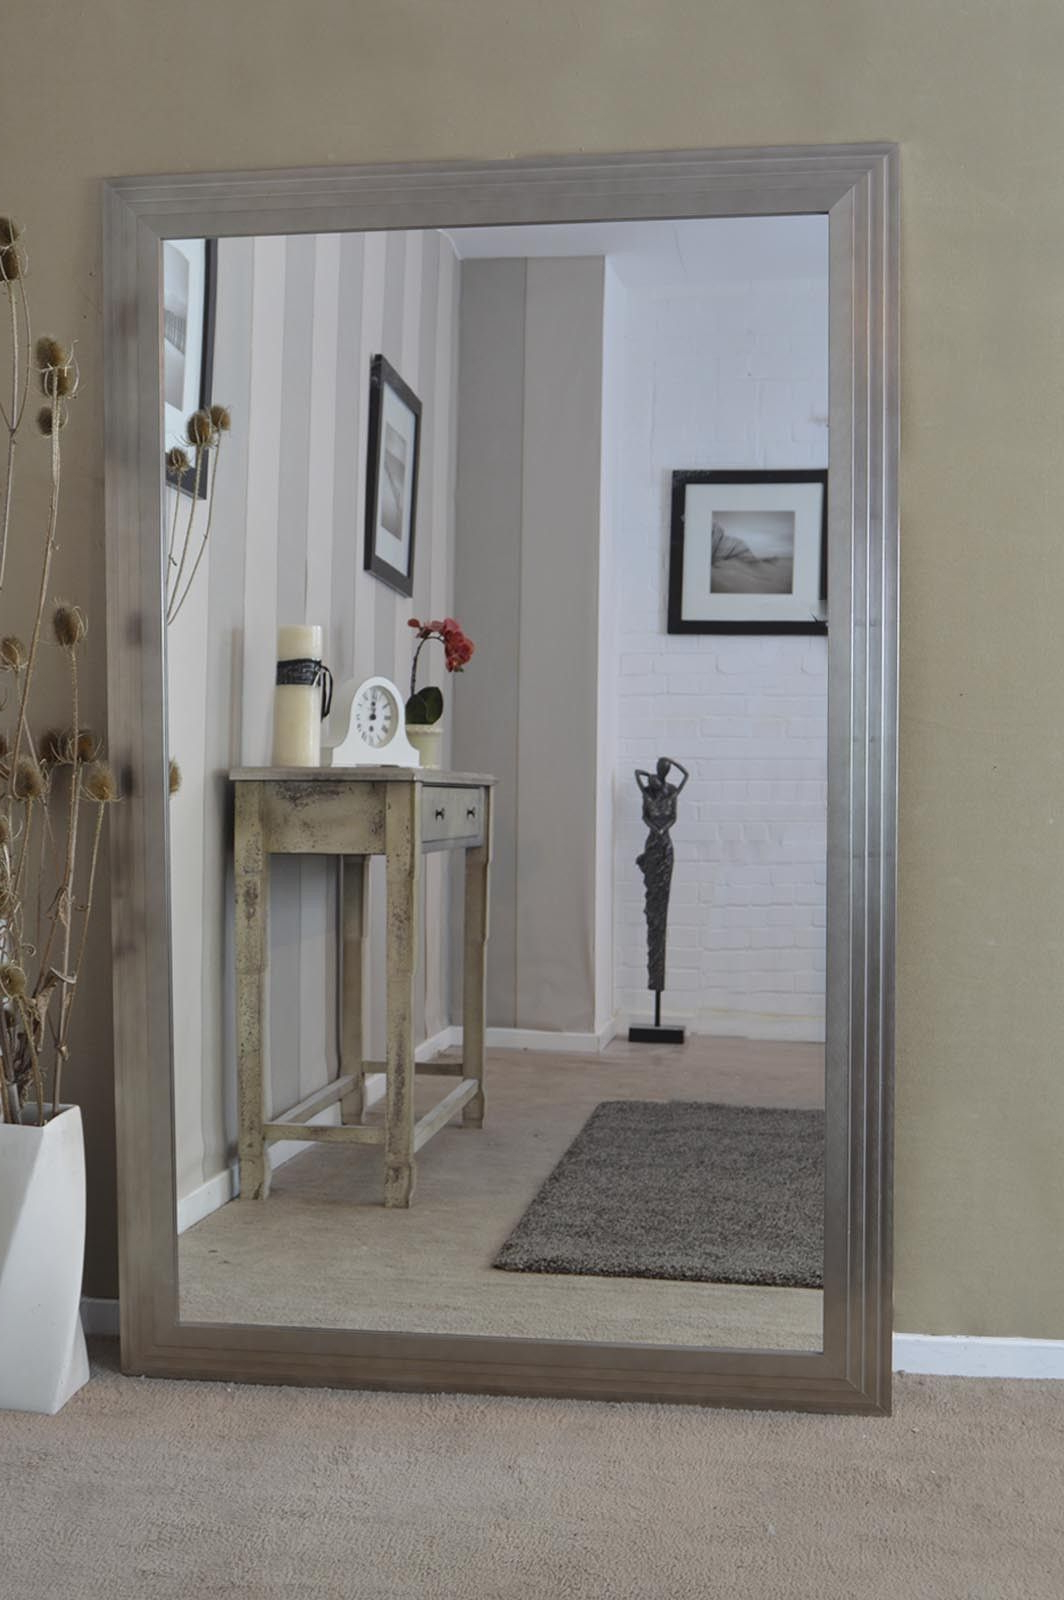 Widely Used Oversized Wall Mirrors Inside Extra Wide Wall Mirror (View 20 of 20)